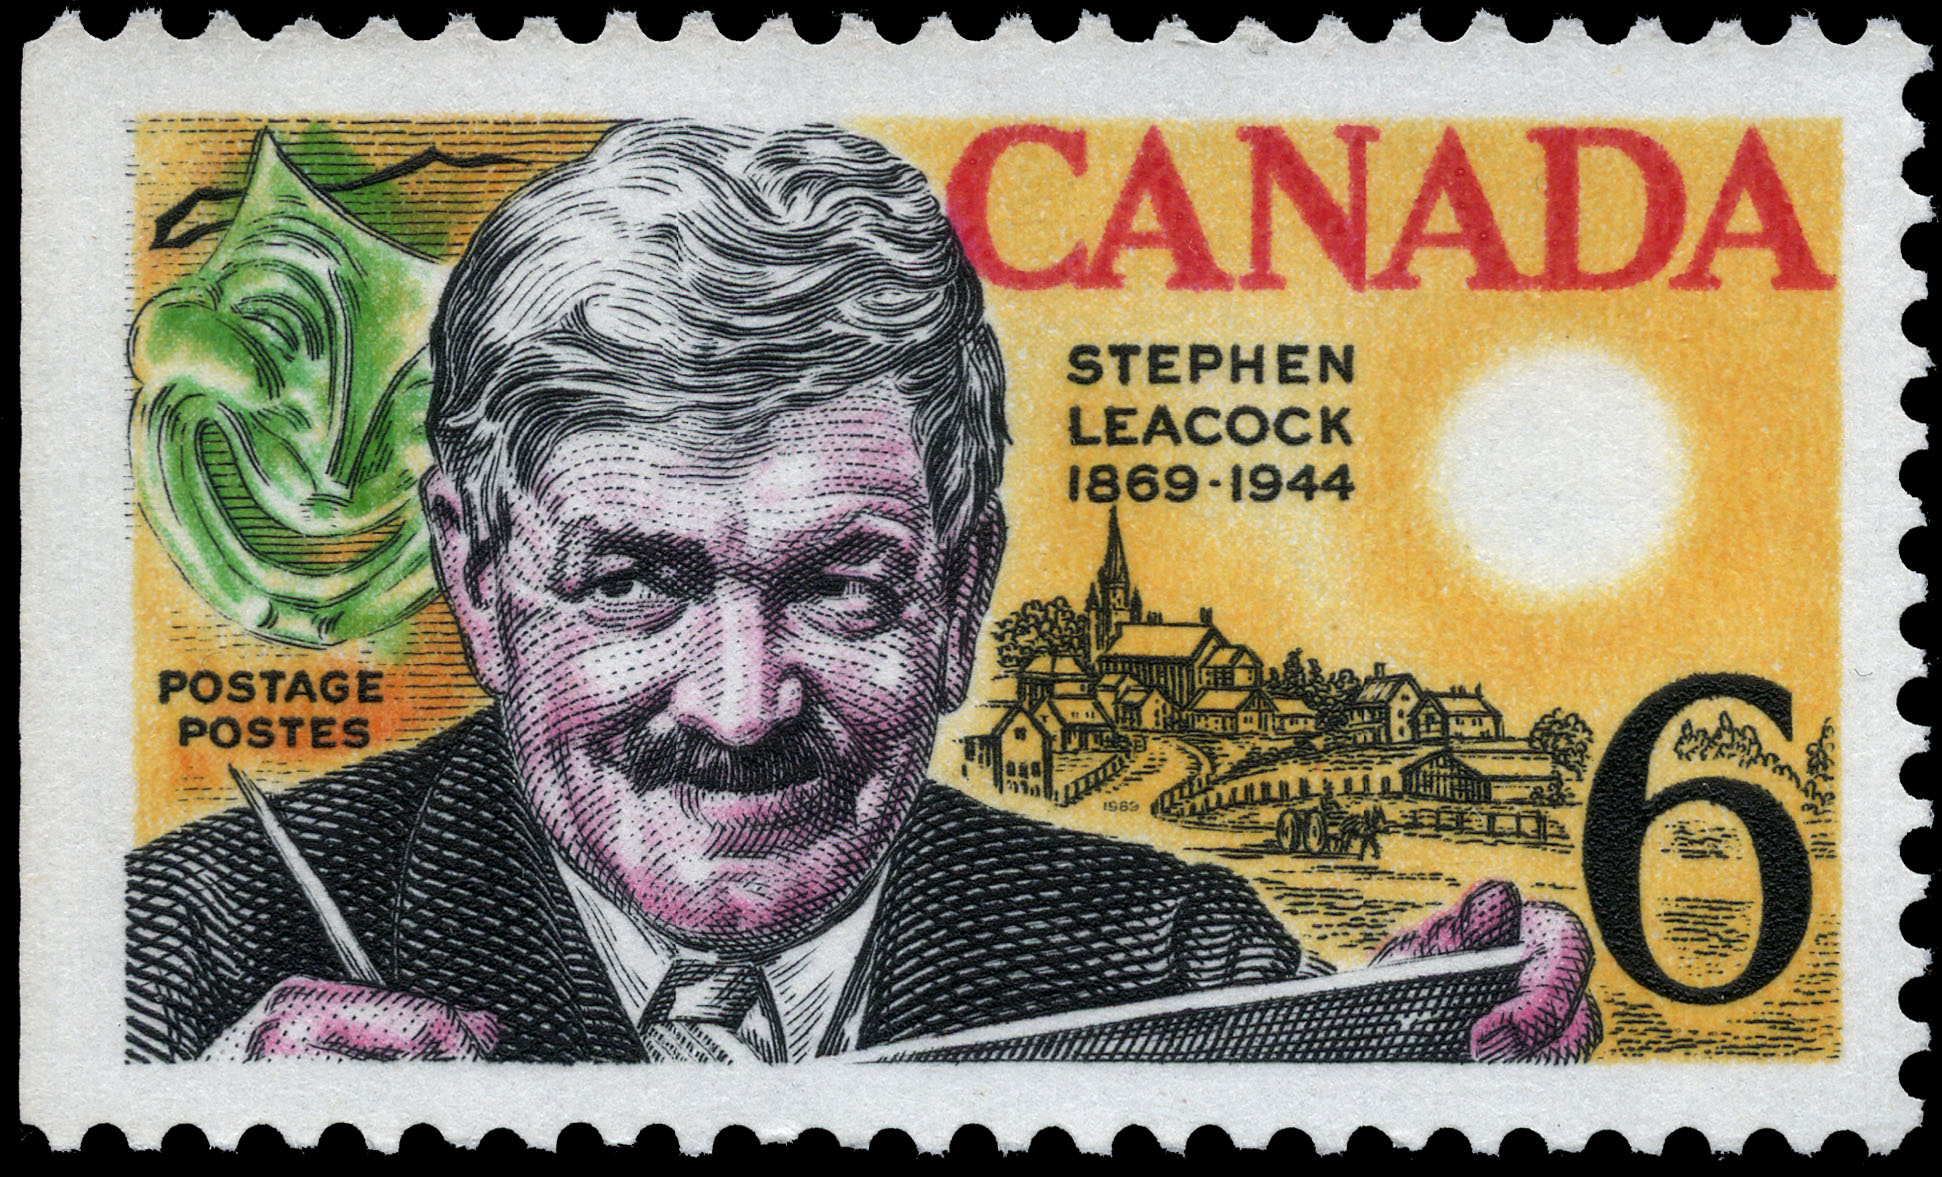 Stephen Leacock, 1869-1944 Canada Postage Stamp